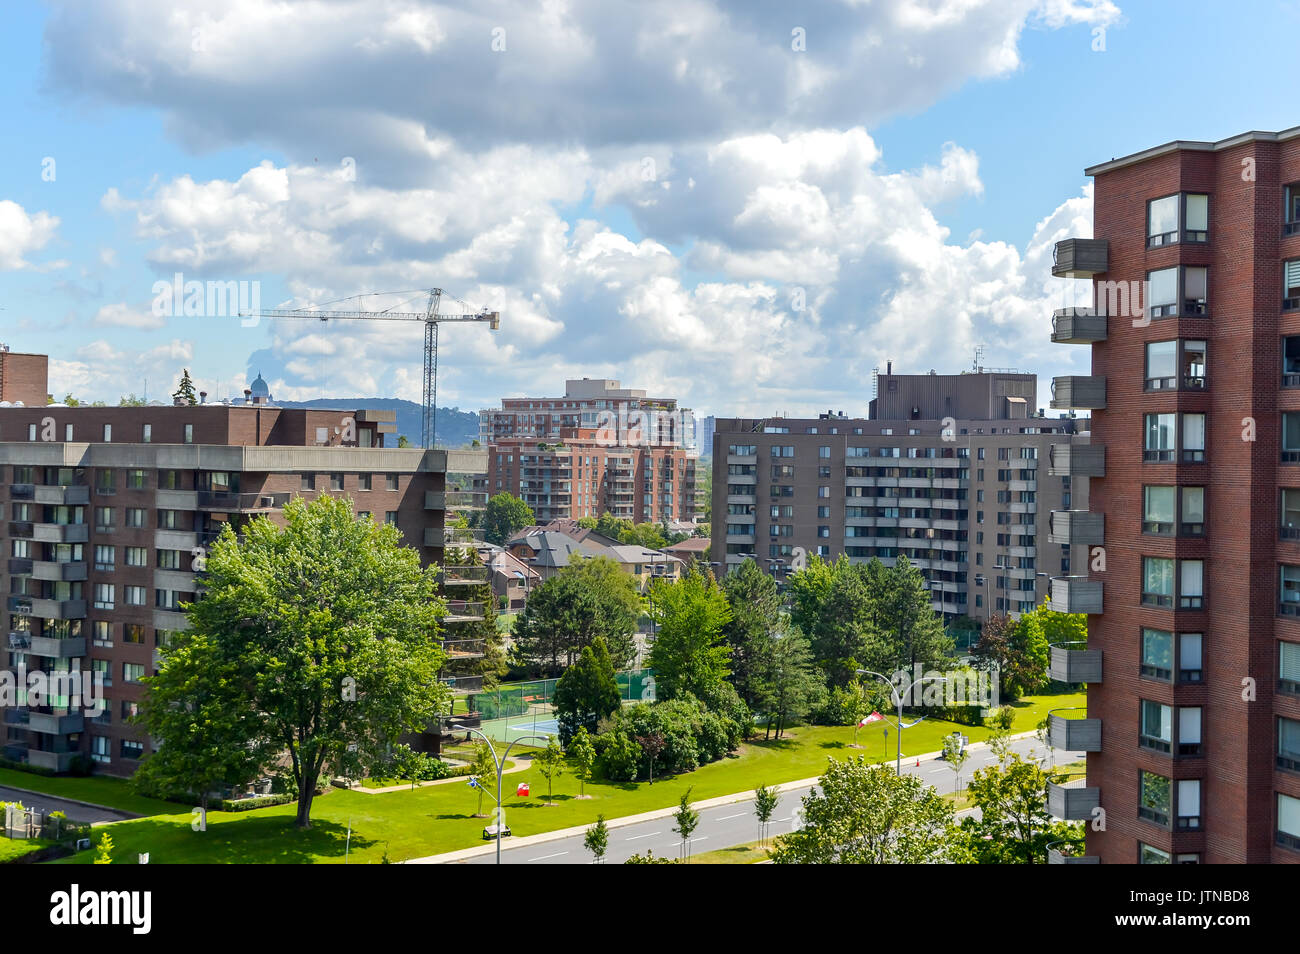 The construction of expensive Condo buildings in Montreal (Cote Saint-Luc), Canada Stock Photo